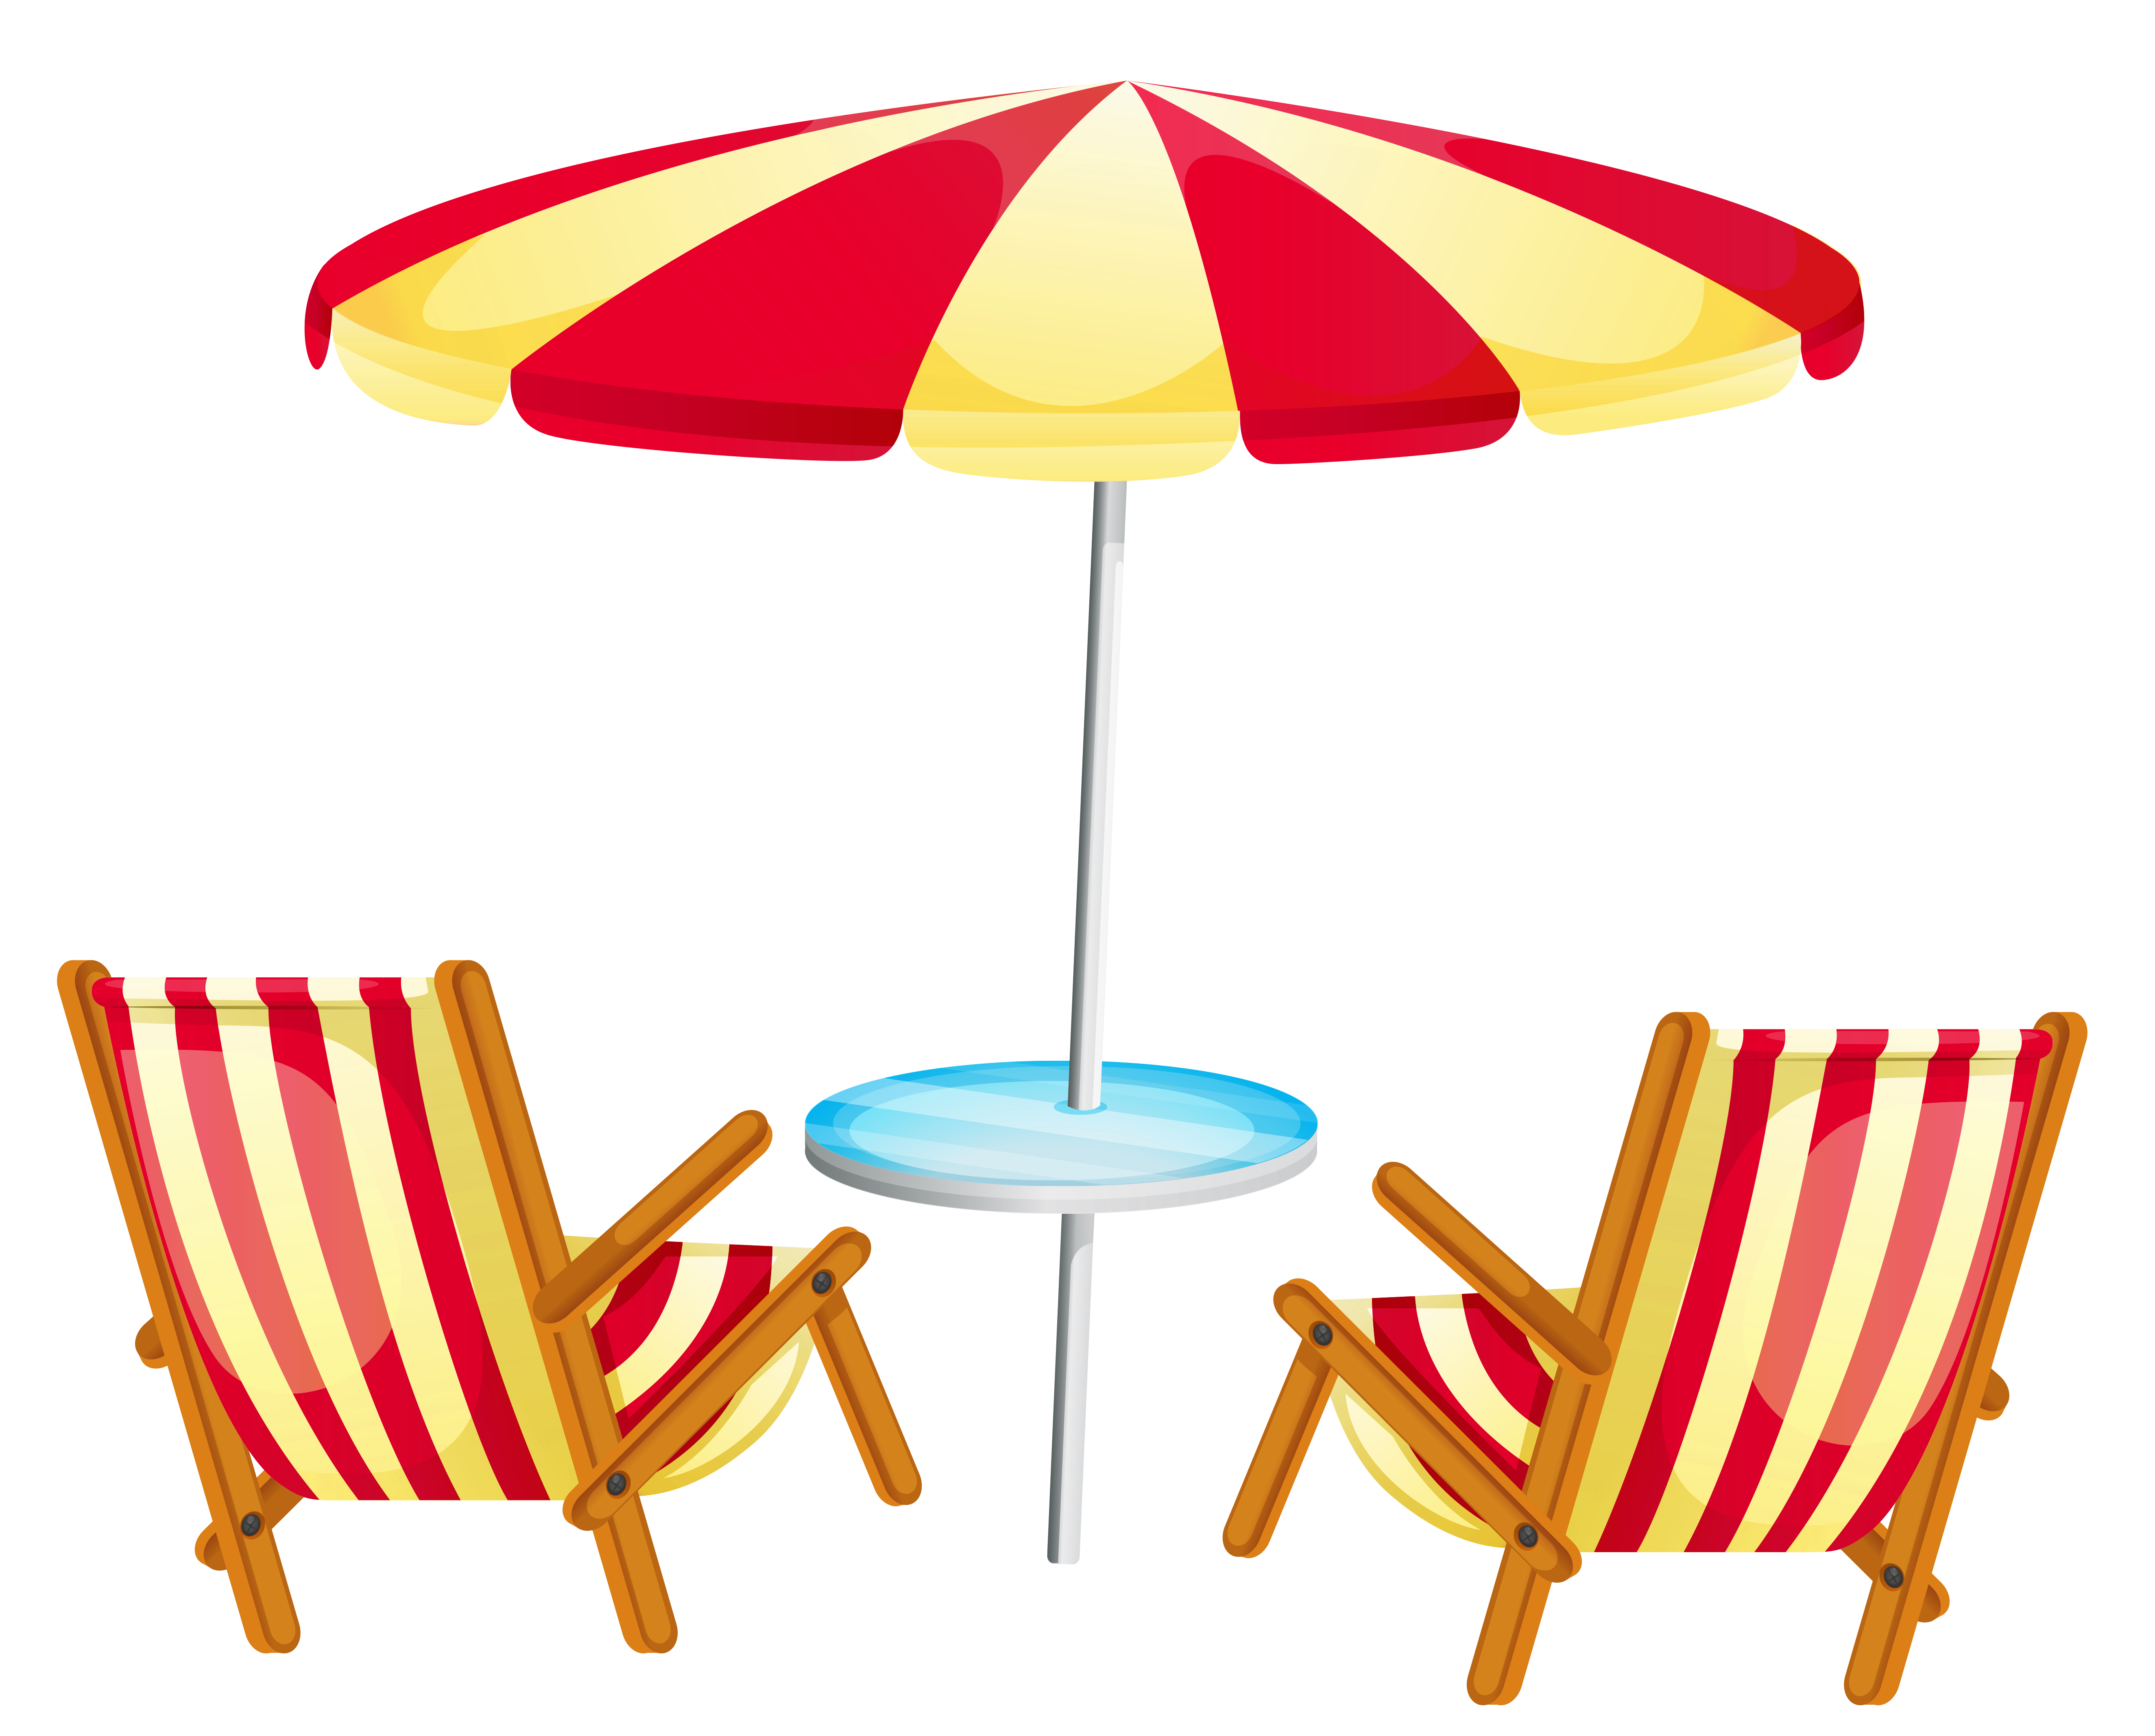 Beachball clipart chair. Best of beach with